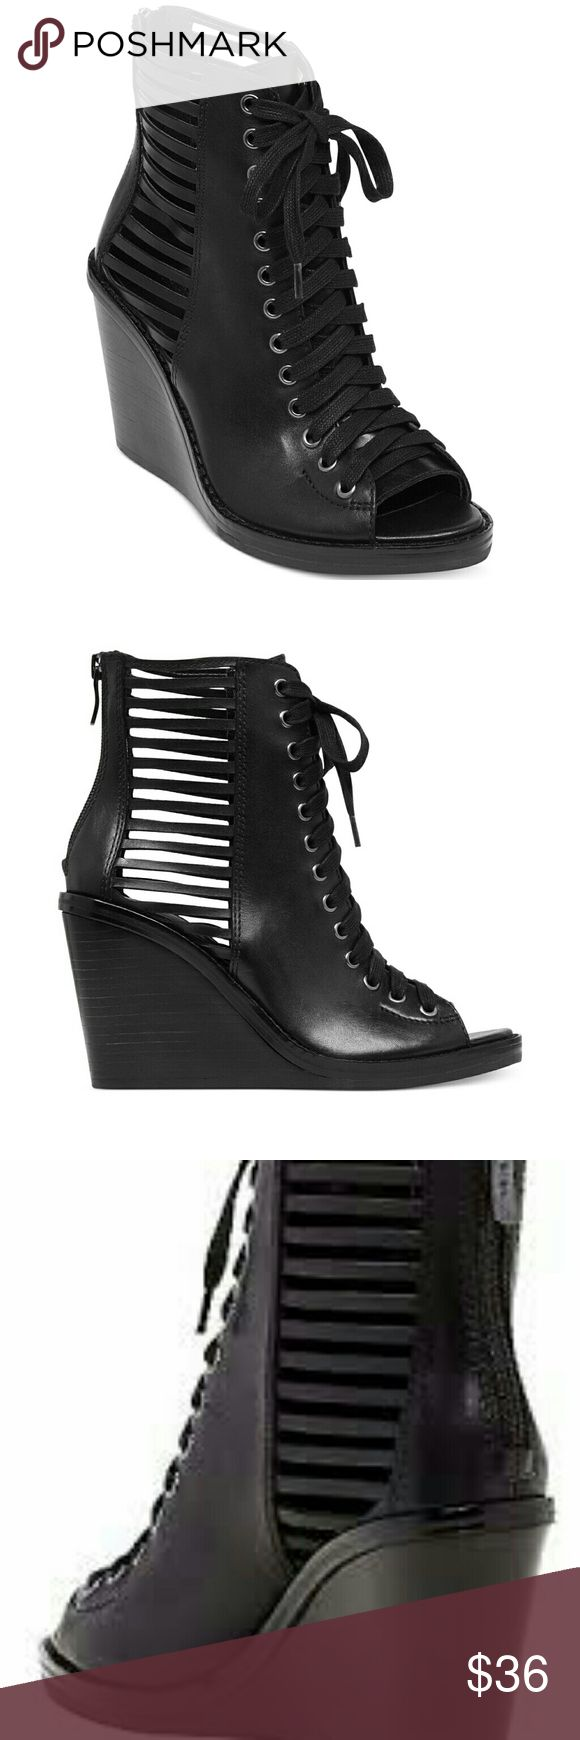 Bcbg lace up wedge booties Malbon bcbg lace up wedge booties BCBG Shoes Wedges